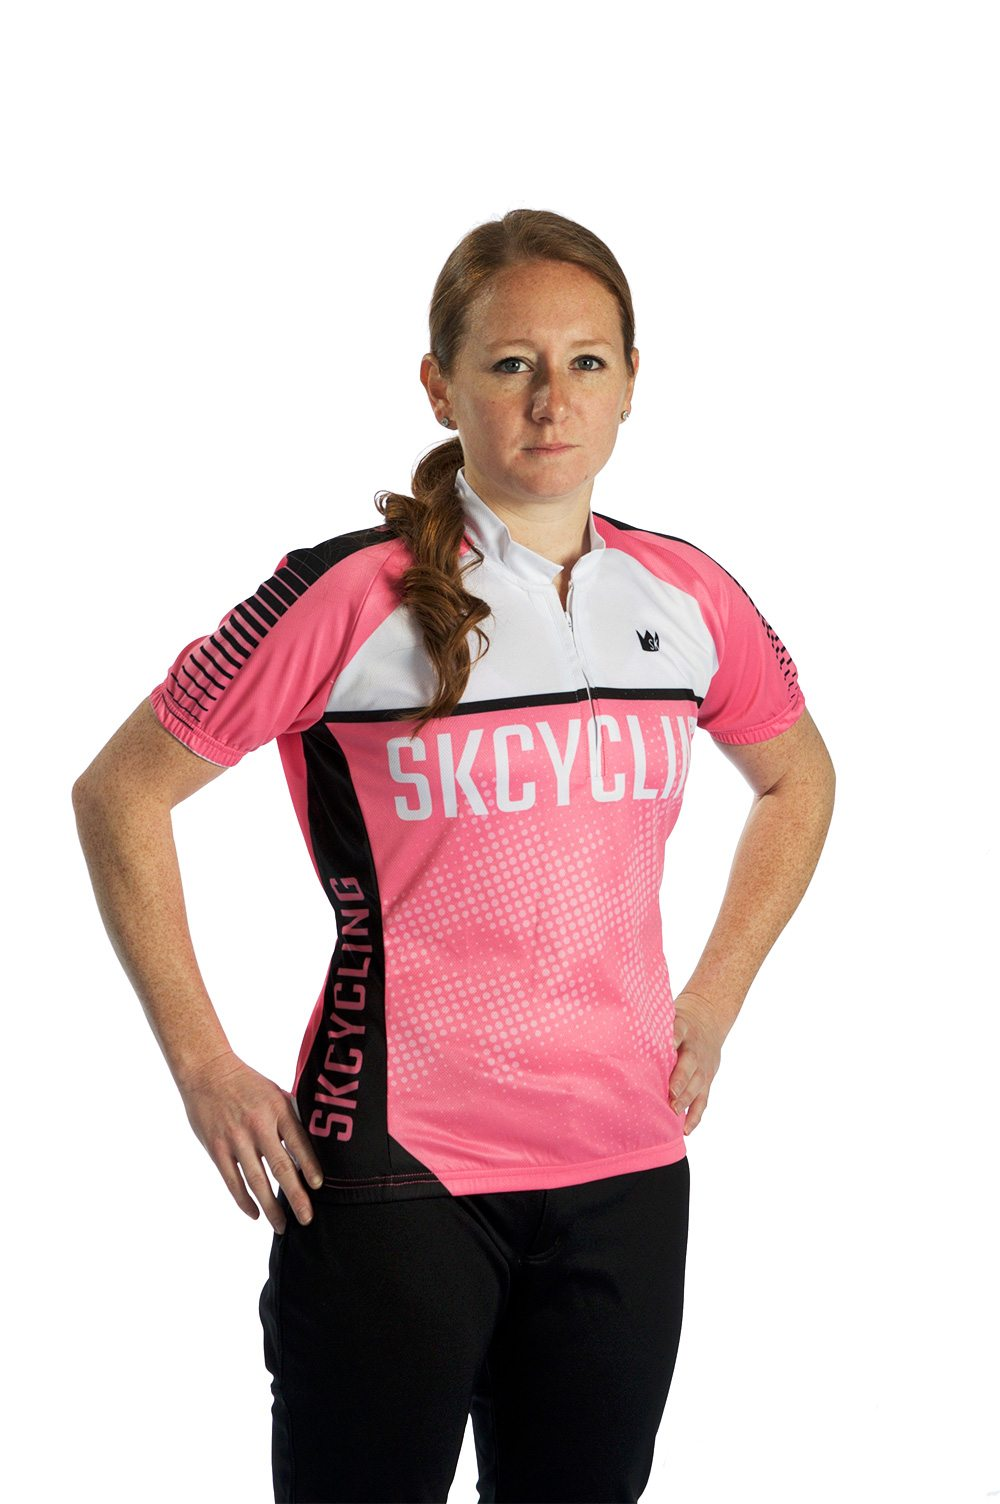 Cycling shirt design your own - Now You Can Design Your Own Cycling Jersey With Our New Custom Cycling Jersey Builder Our Jerseys Come Standard With A 1 4 Zip Hidden Zipper And Feature